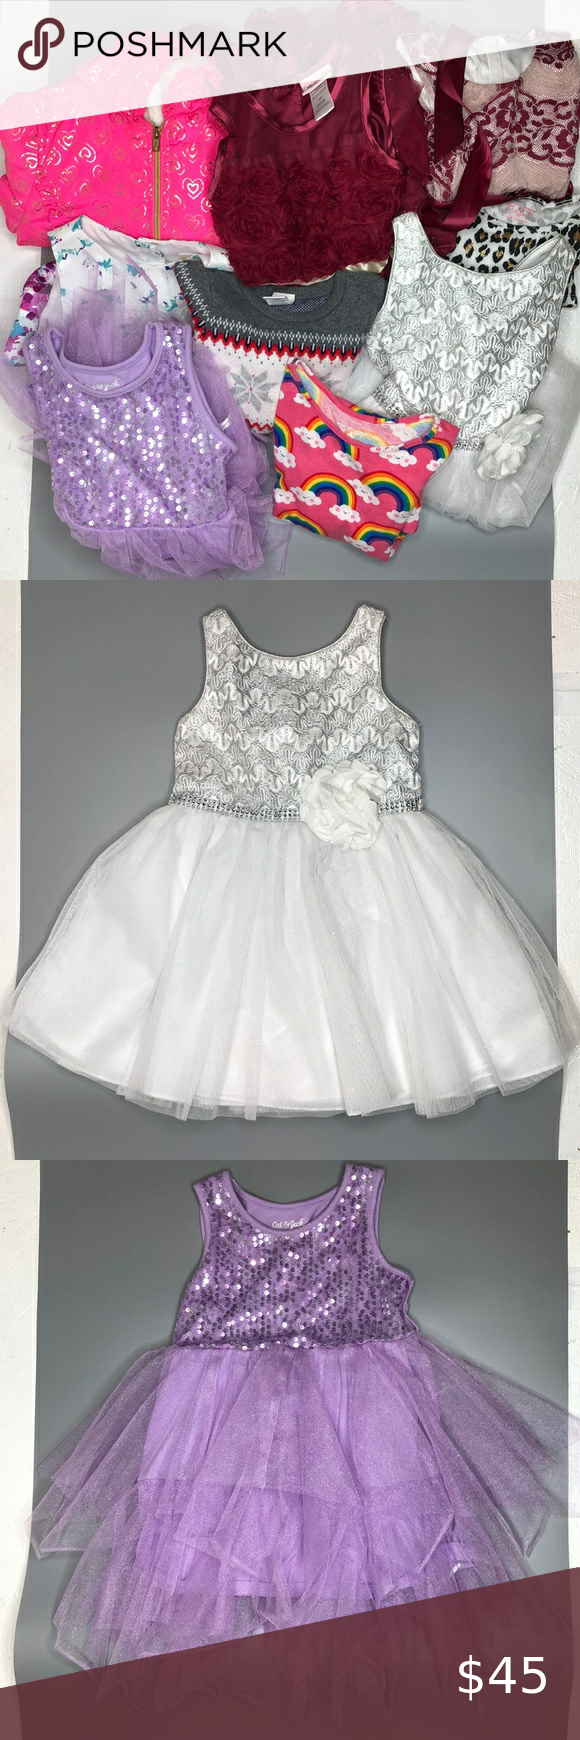 Girl Bundle Dresses 4t Mixed Of Brands Gently Used Girls Dresses Purple Dress Is Cat Jack Length 21 Pink Rainbow Dr White Sparkly Dress 4t Dress Dresses [ 1740 x 580 Pixel ]